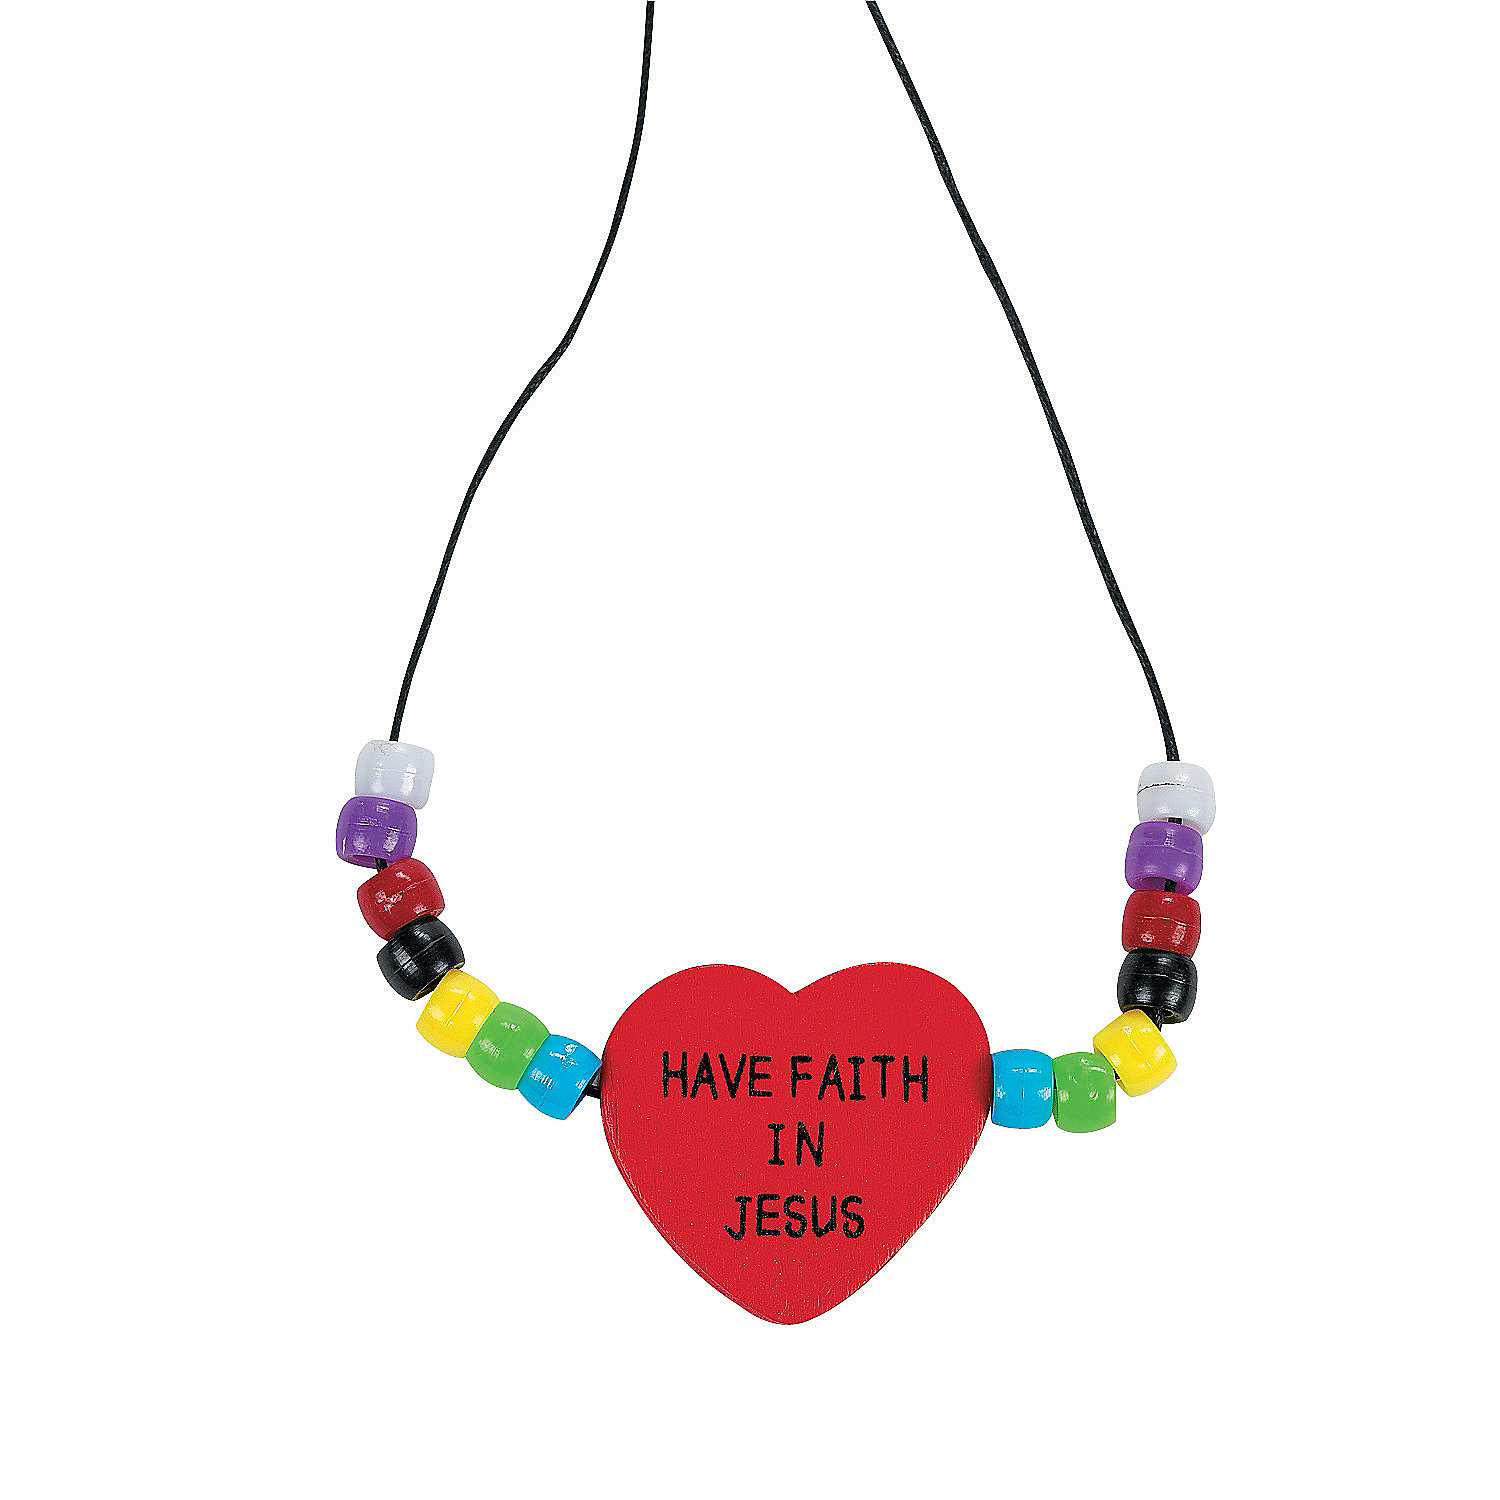 Craft Necklace Kits